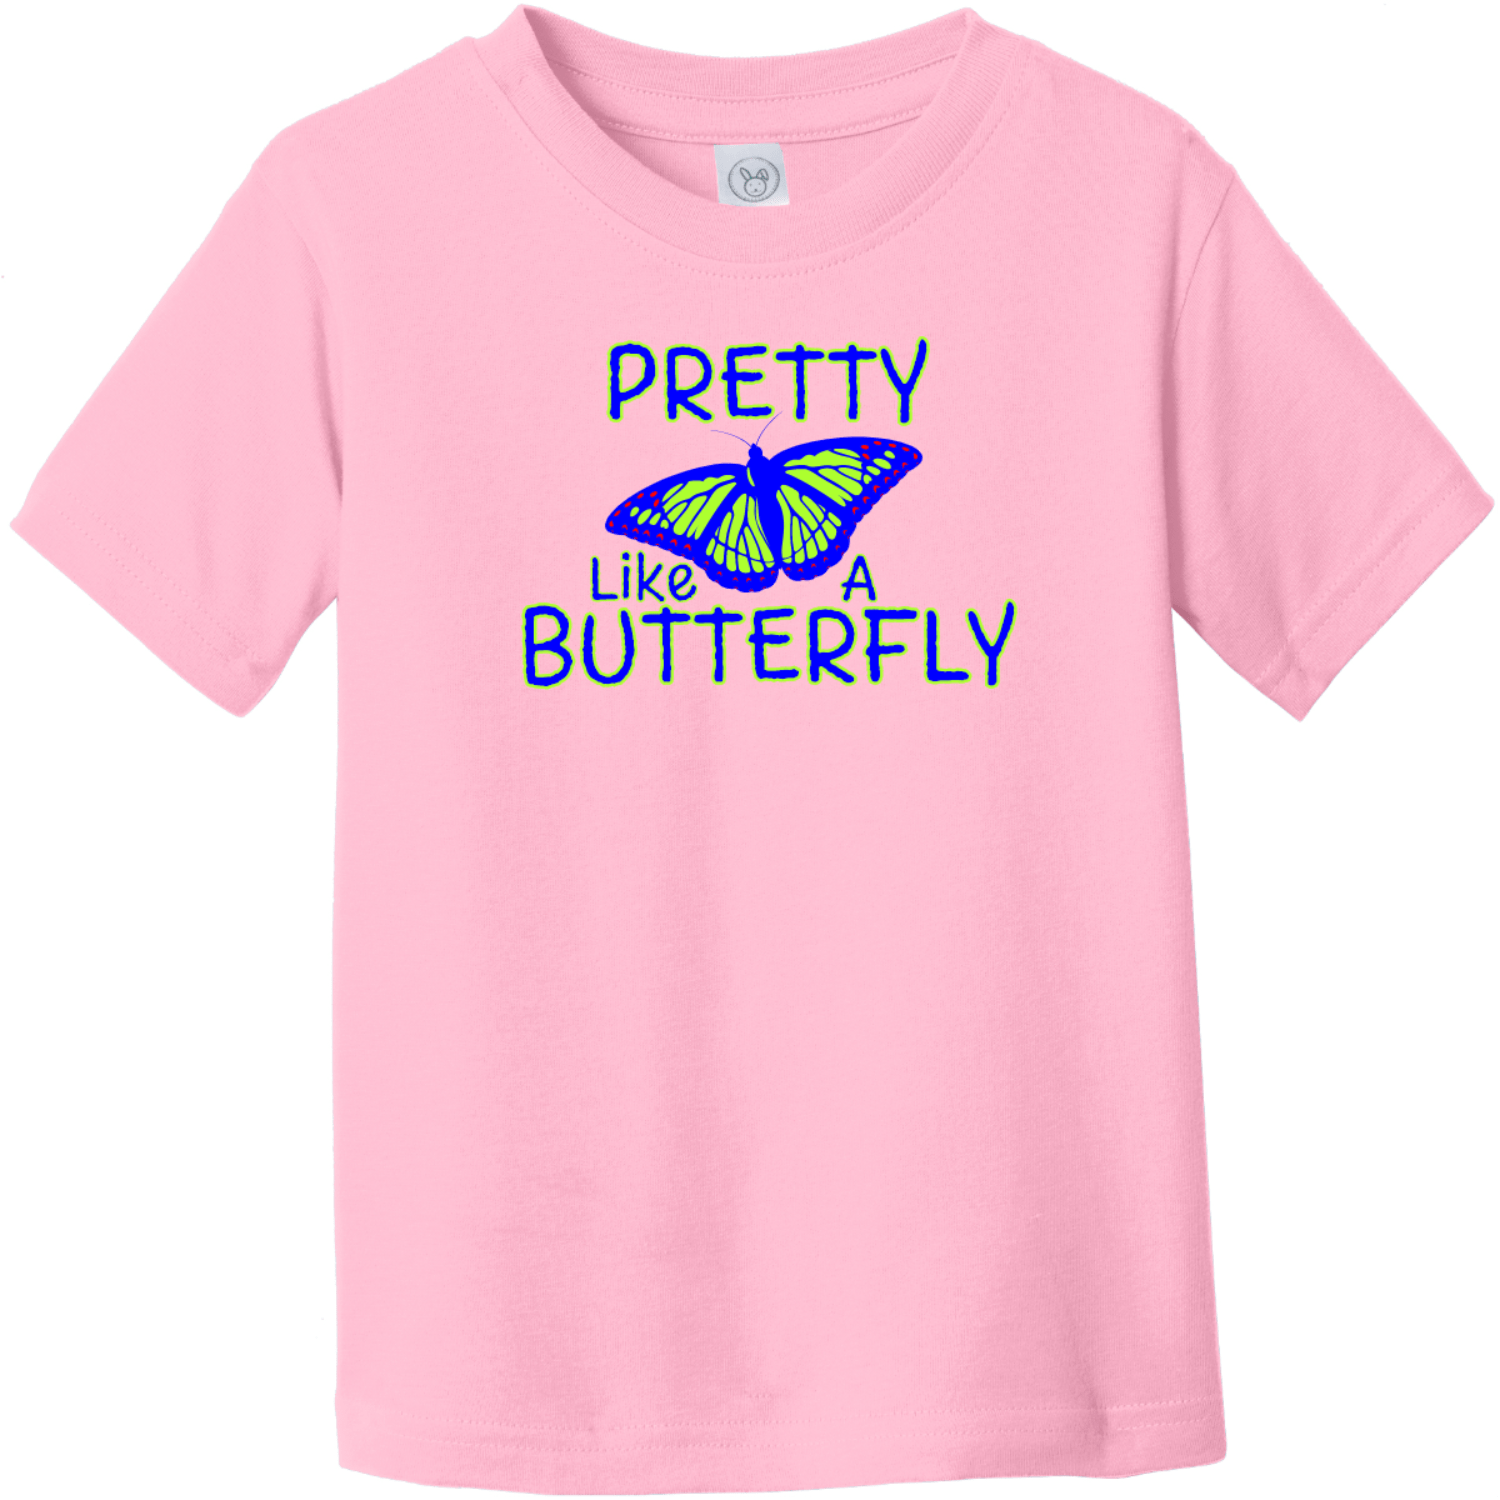 Pretty Like A Butterfly Toddler T-Shirt Pink Rabbit Skins Toddler Fine Jersey Tee RS3321